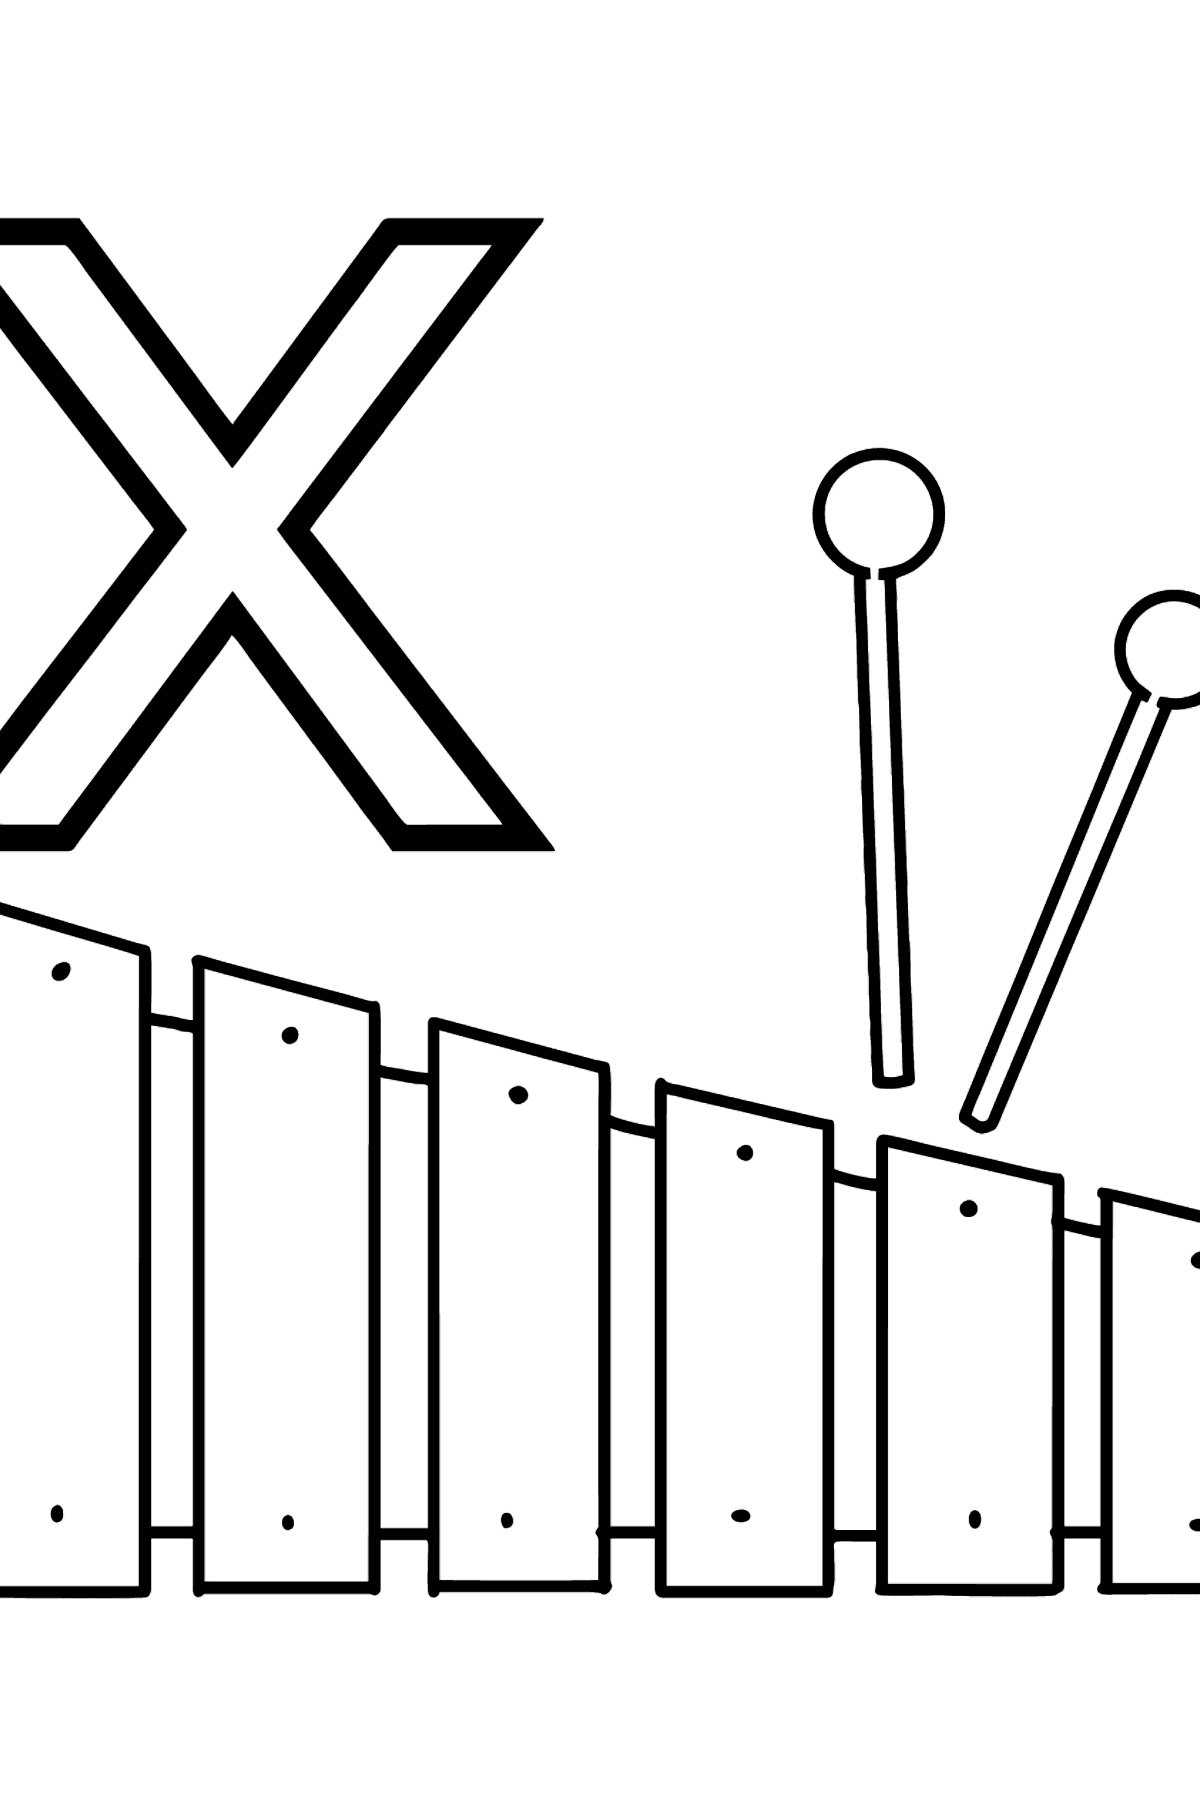 French Letter X coloring pages - XYLOPHONE - Coloring Pages for Kids